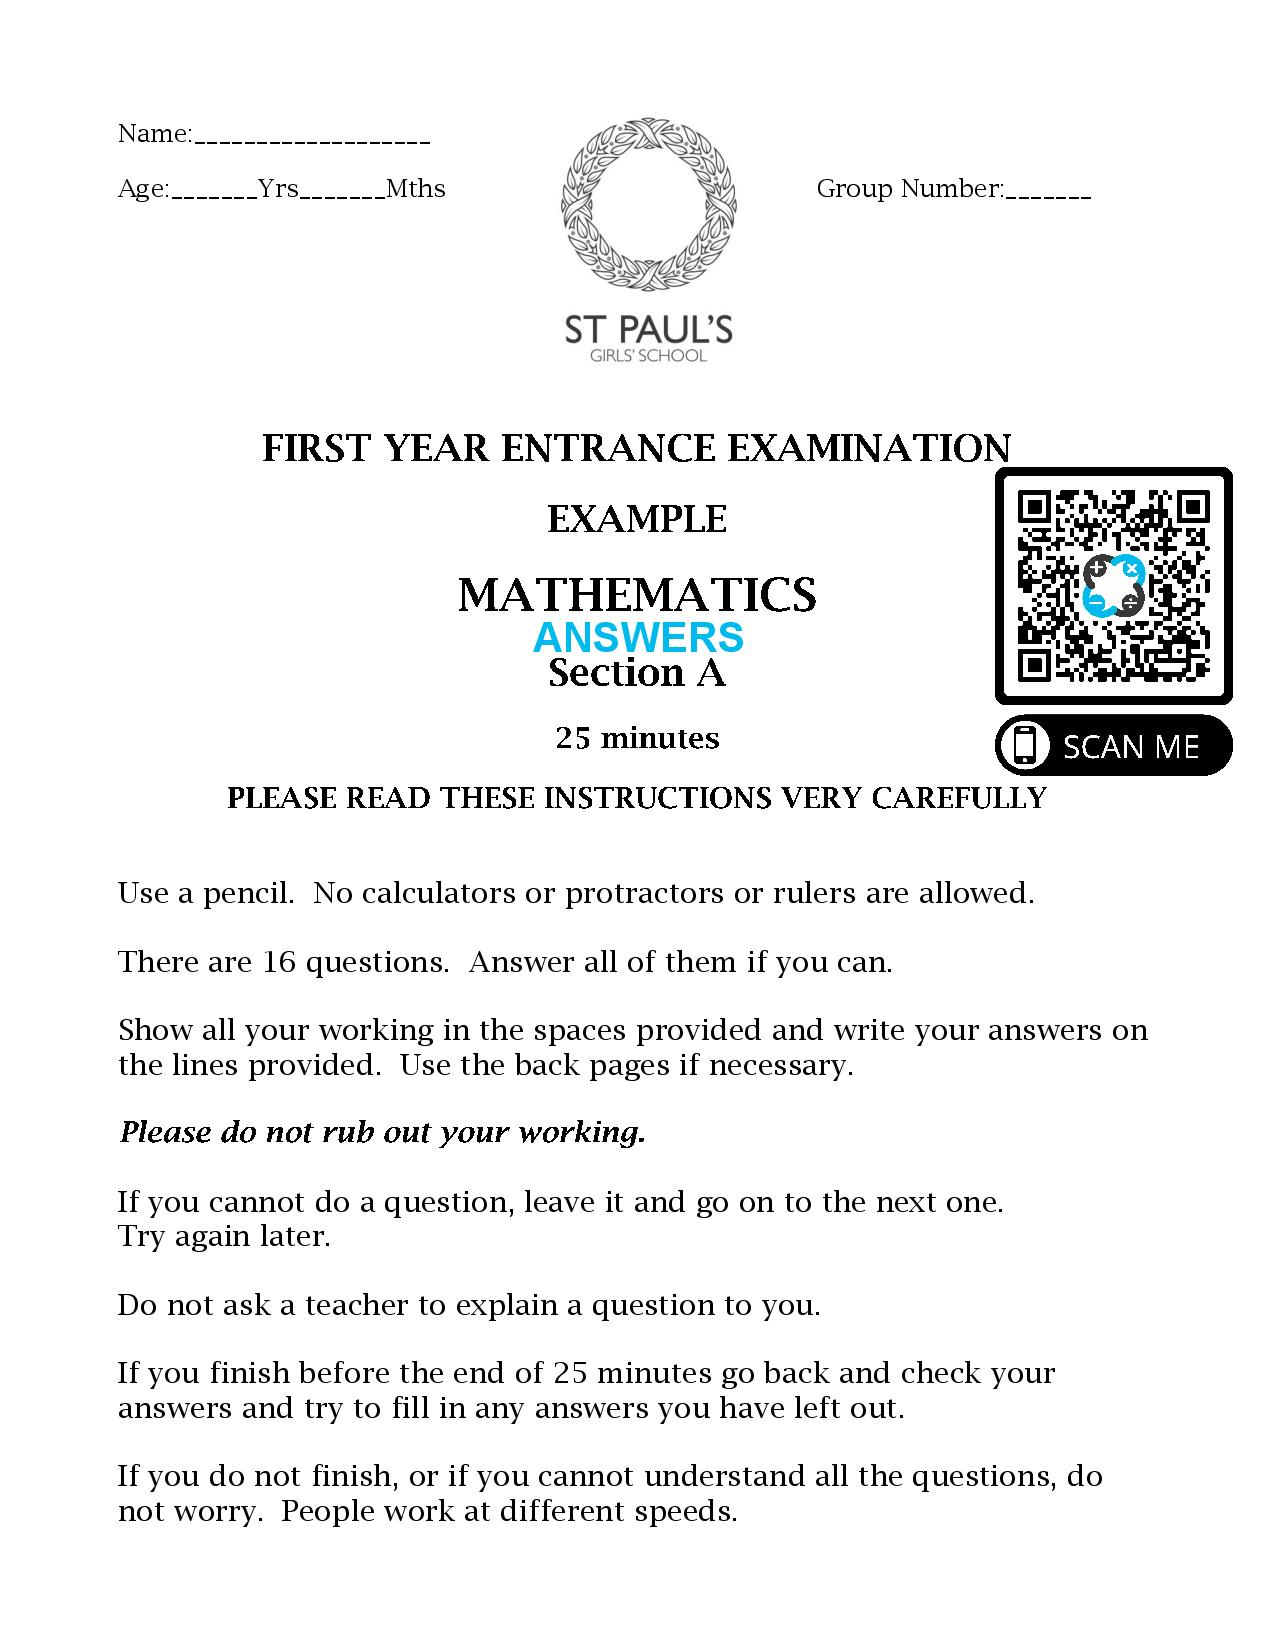 St Pauls School FIRST YEAR ENTRANCE EXAMINATION EXAMPLE 1 MATHEMATICS Section A 2017 Answers Paper page 001